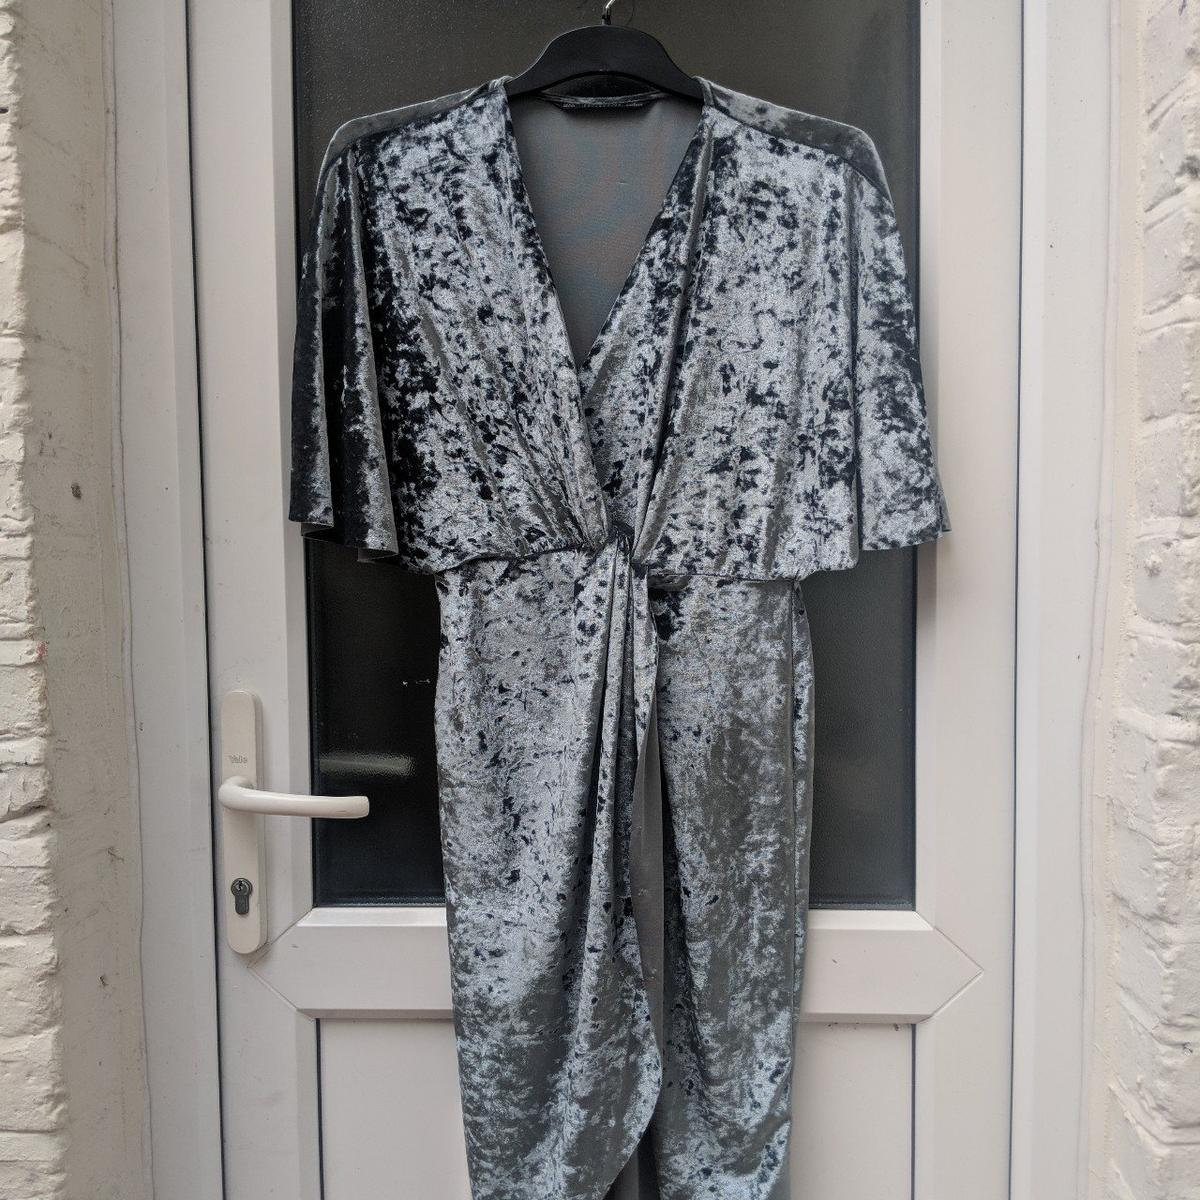 94a8dc8b Zara Crossover Wrap Velvet Midi Dress in E15 London for £20.00 for sale -  Shpock